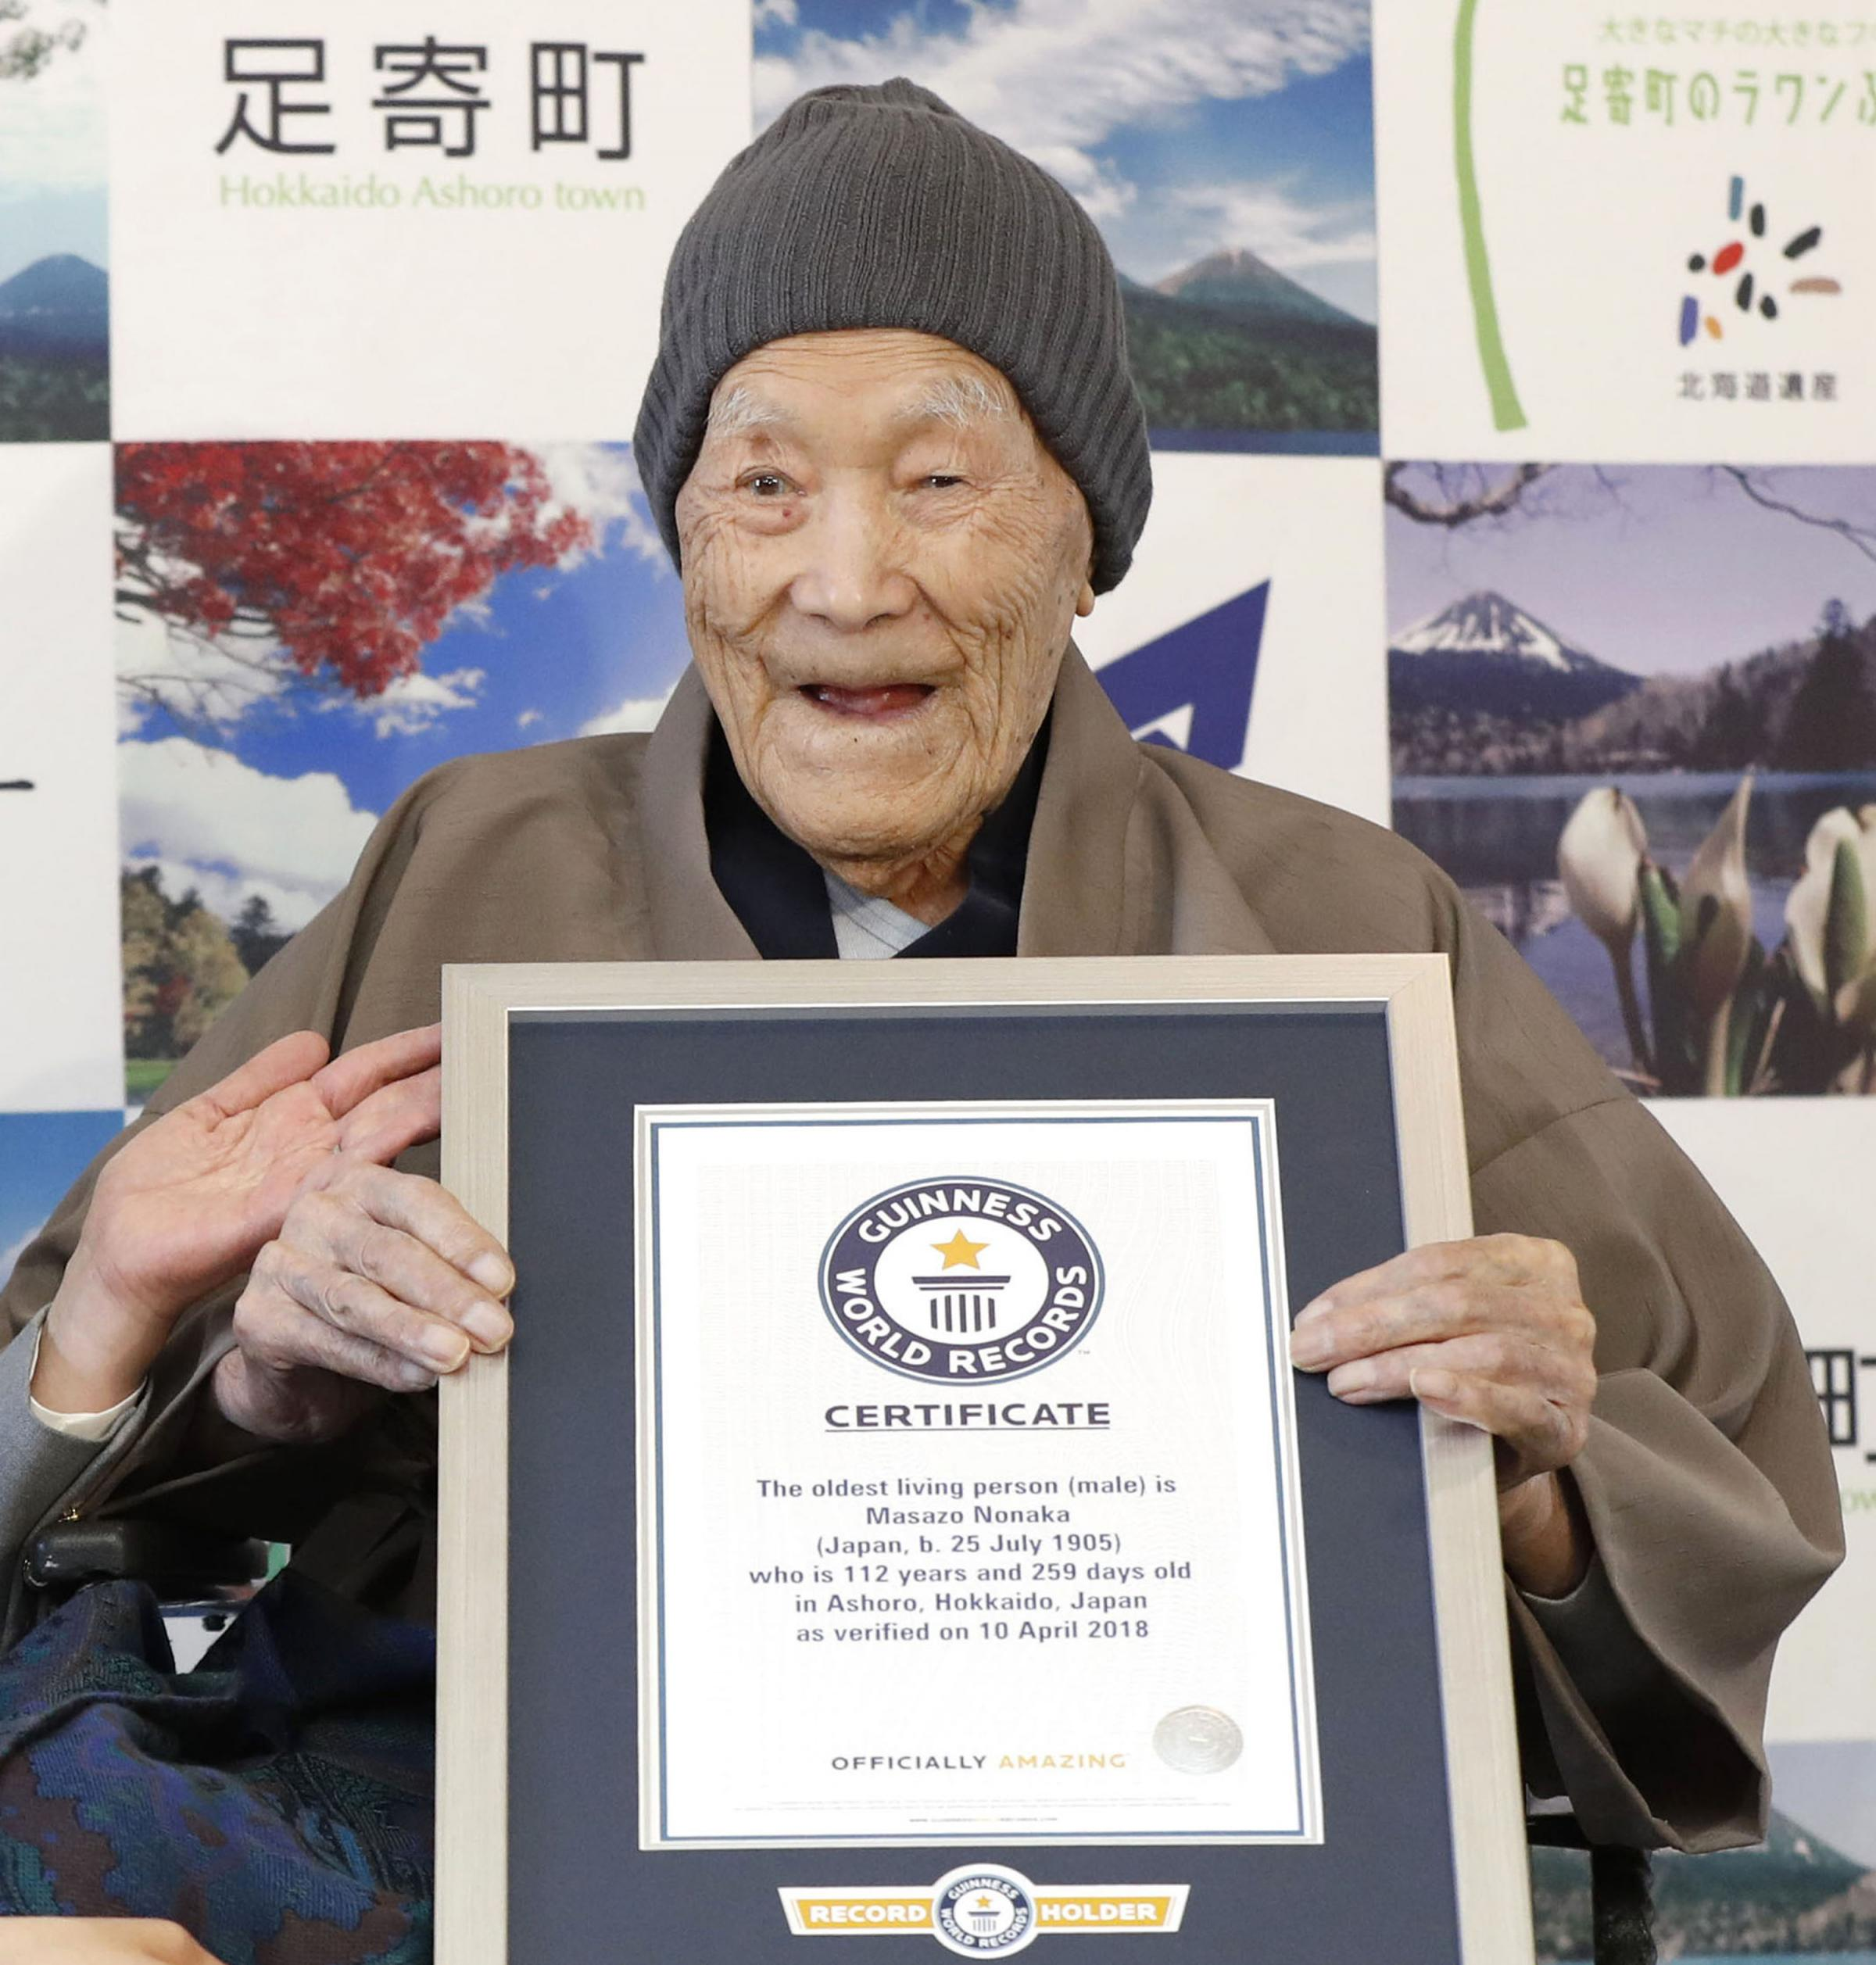 In this April 10, 2018, file photo, Masazo Nonaka eats a cake after receiving the certificate from Guinness World Records as the world's oldest living man at then age 112 years and 259 days during a ceremony in Ashoro on Japan's northern main isl